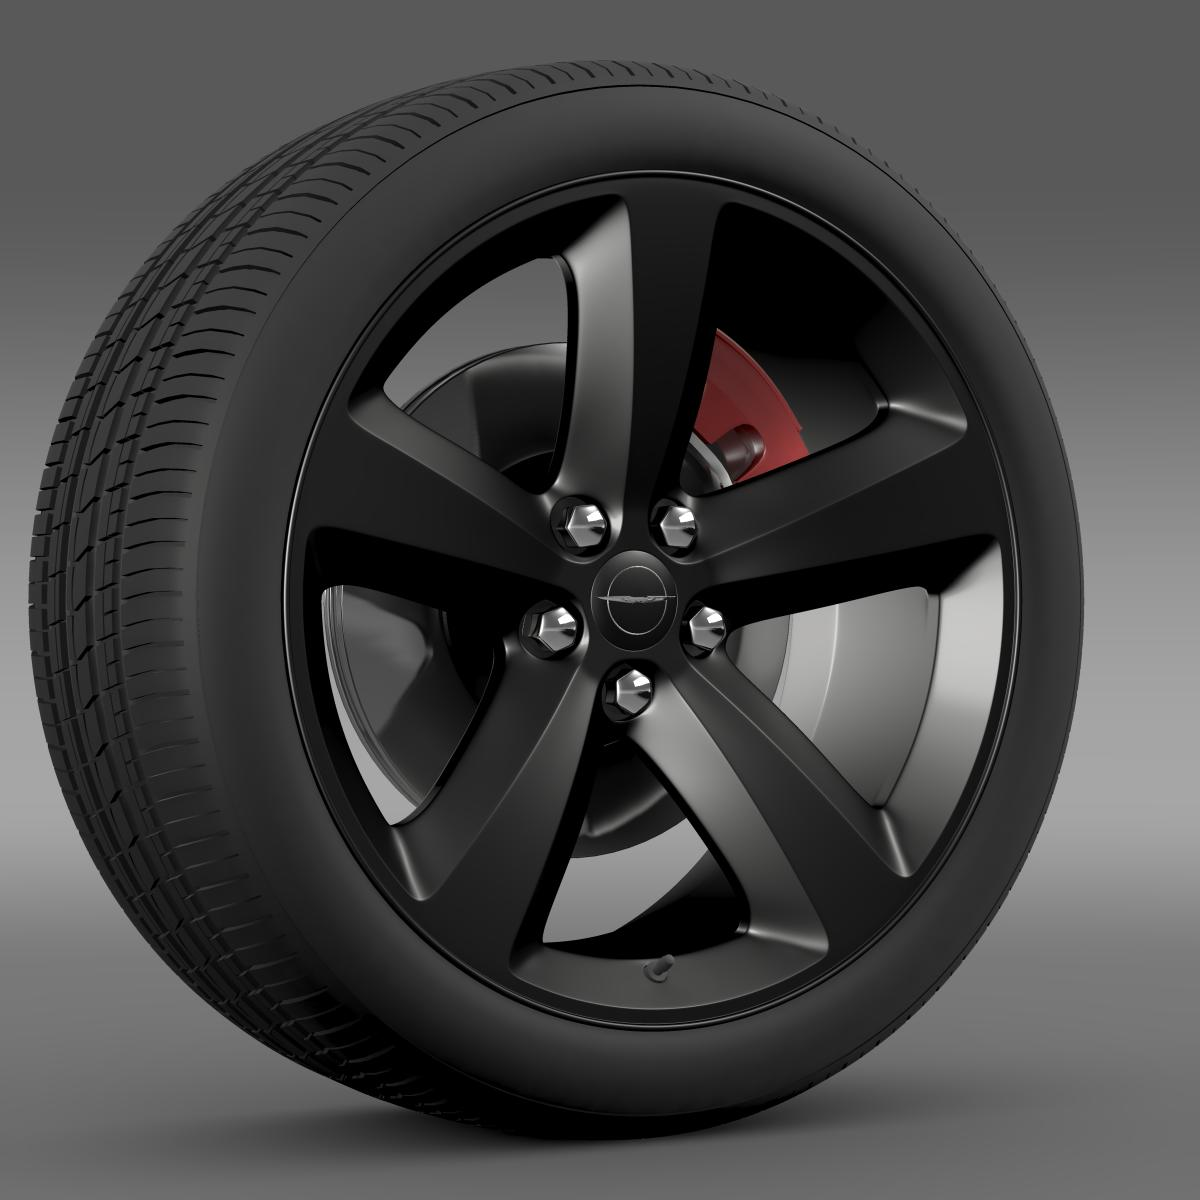 chrysler 300s wheel 3d model 3ds max fbx c4d lwo ma mb hrc xsi obj 210670